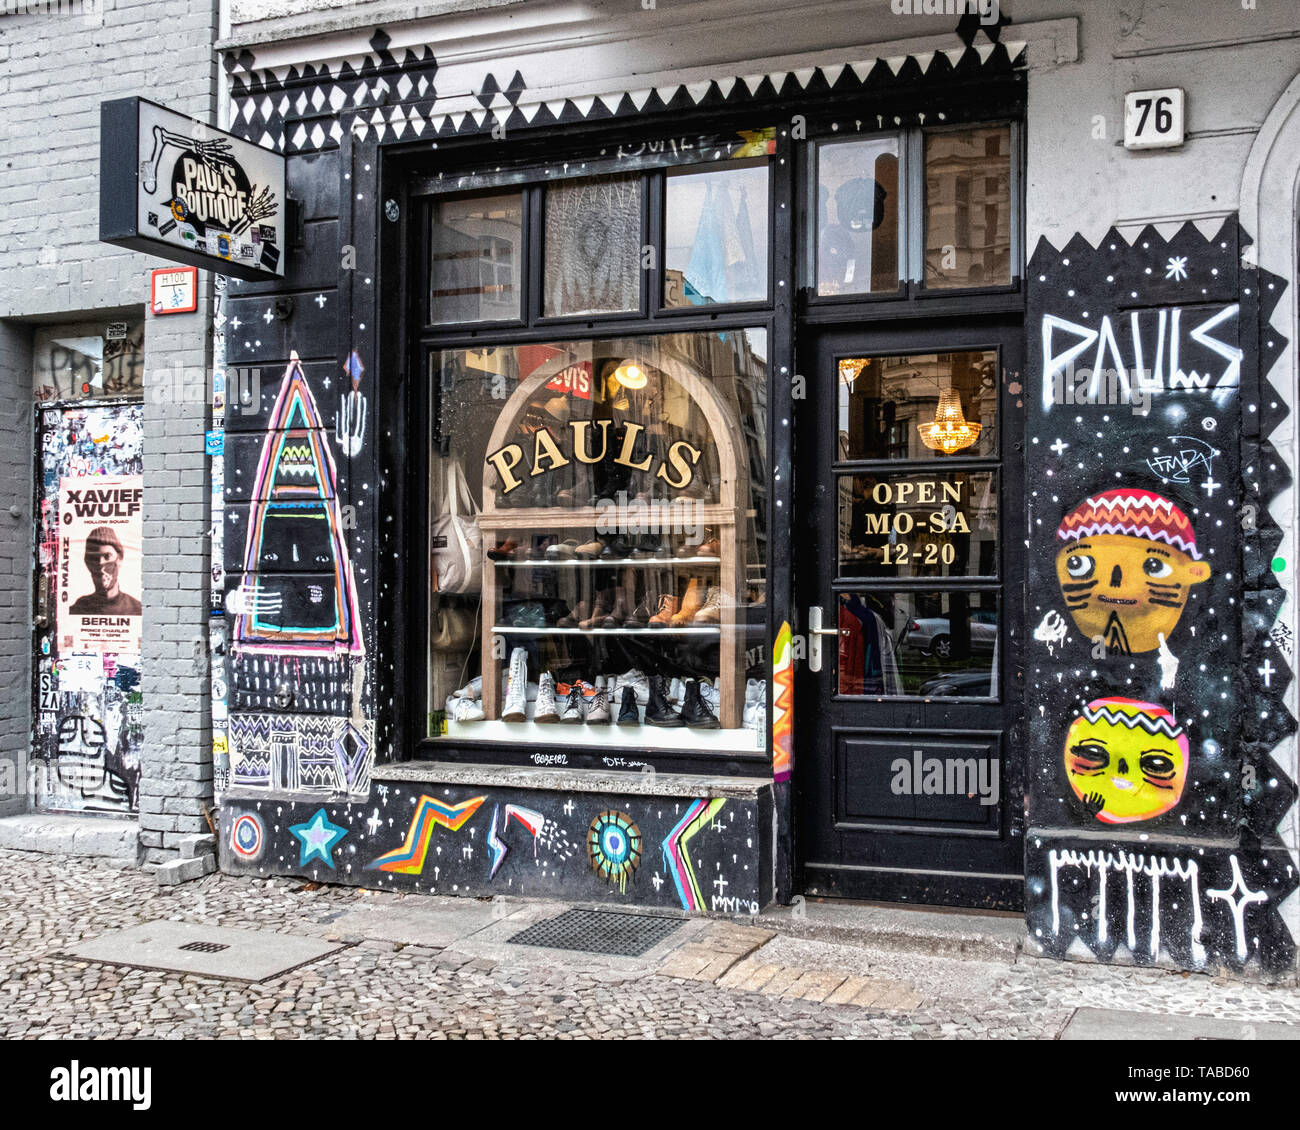 Berlin,Mitte. Pauls Boutique shop exterior & display window. Vintage clothing & fashion in Torstrasse Stock Photo